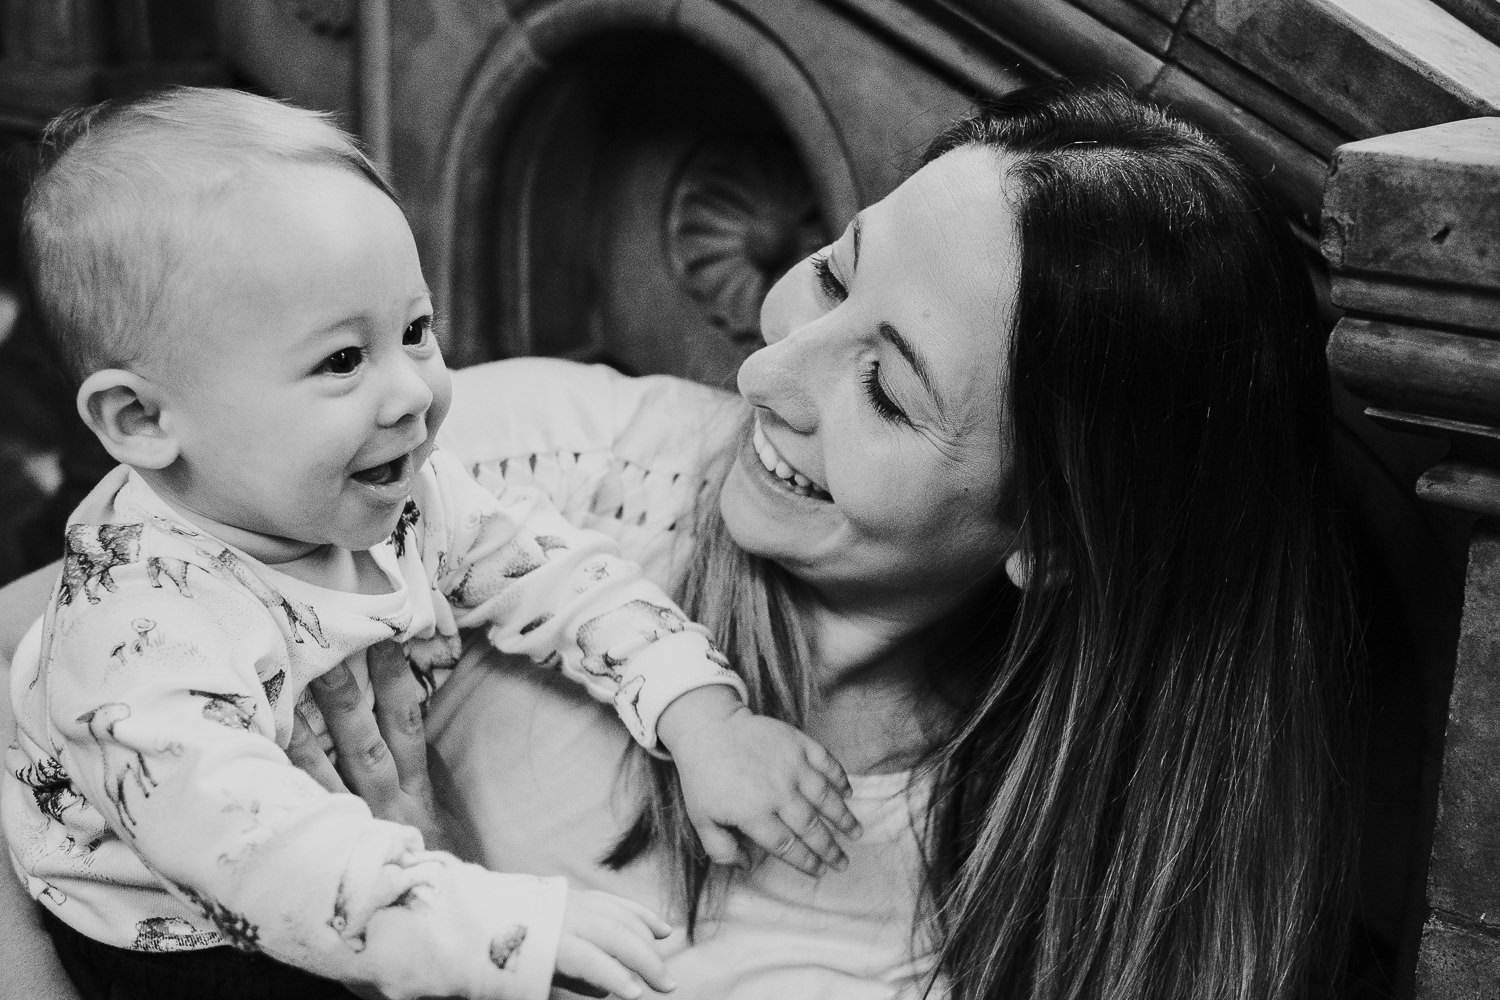 mum and baby son smiling at each other in black and white